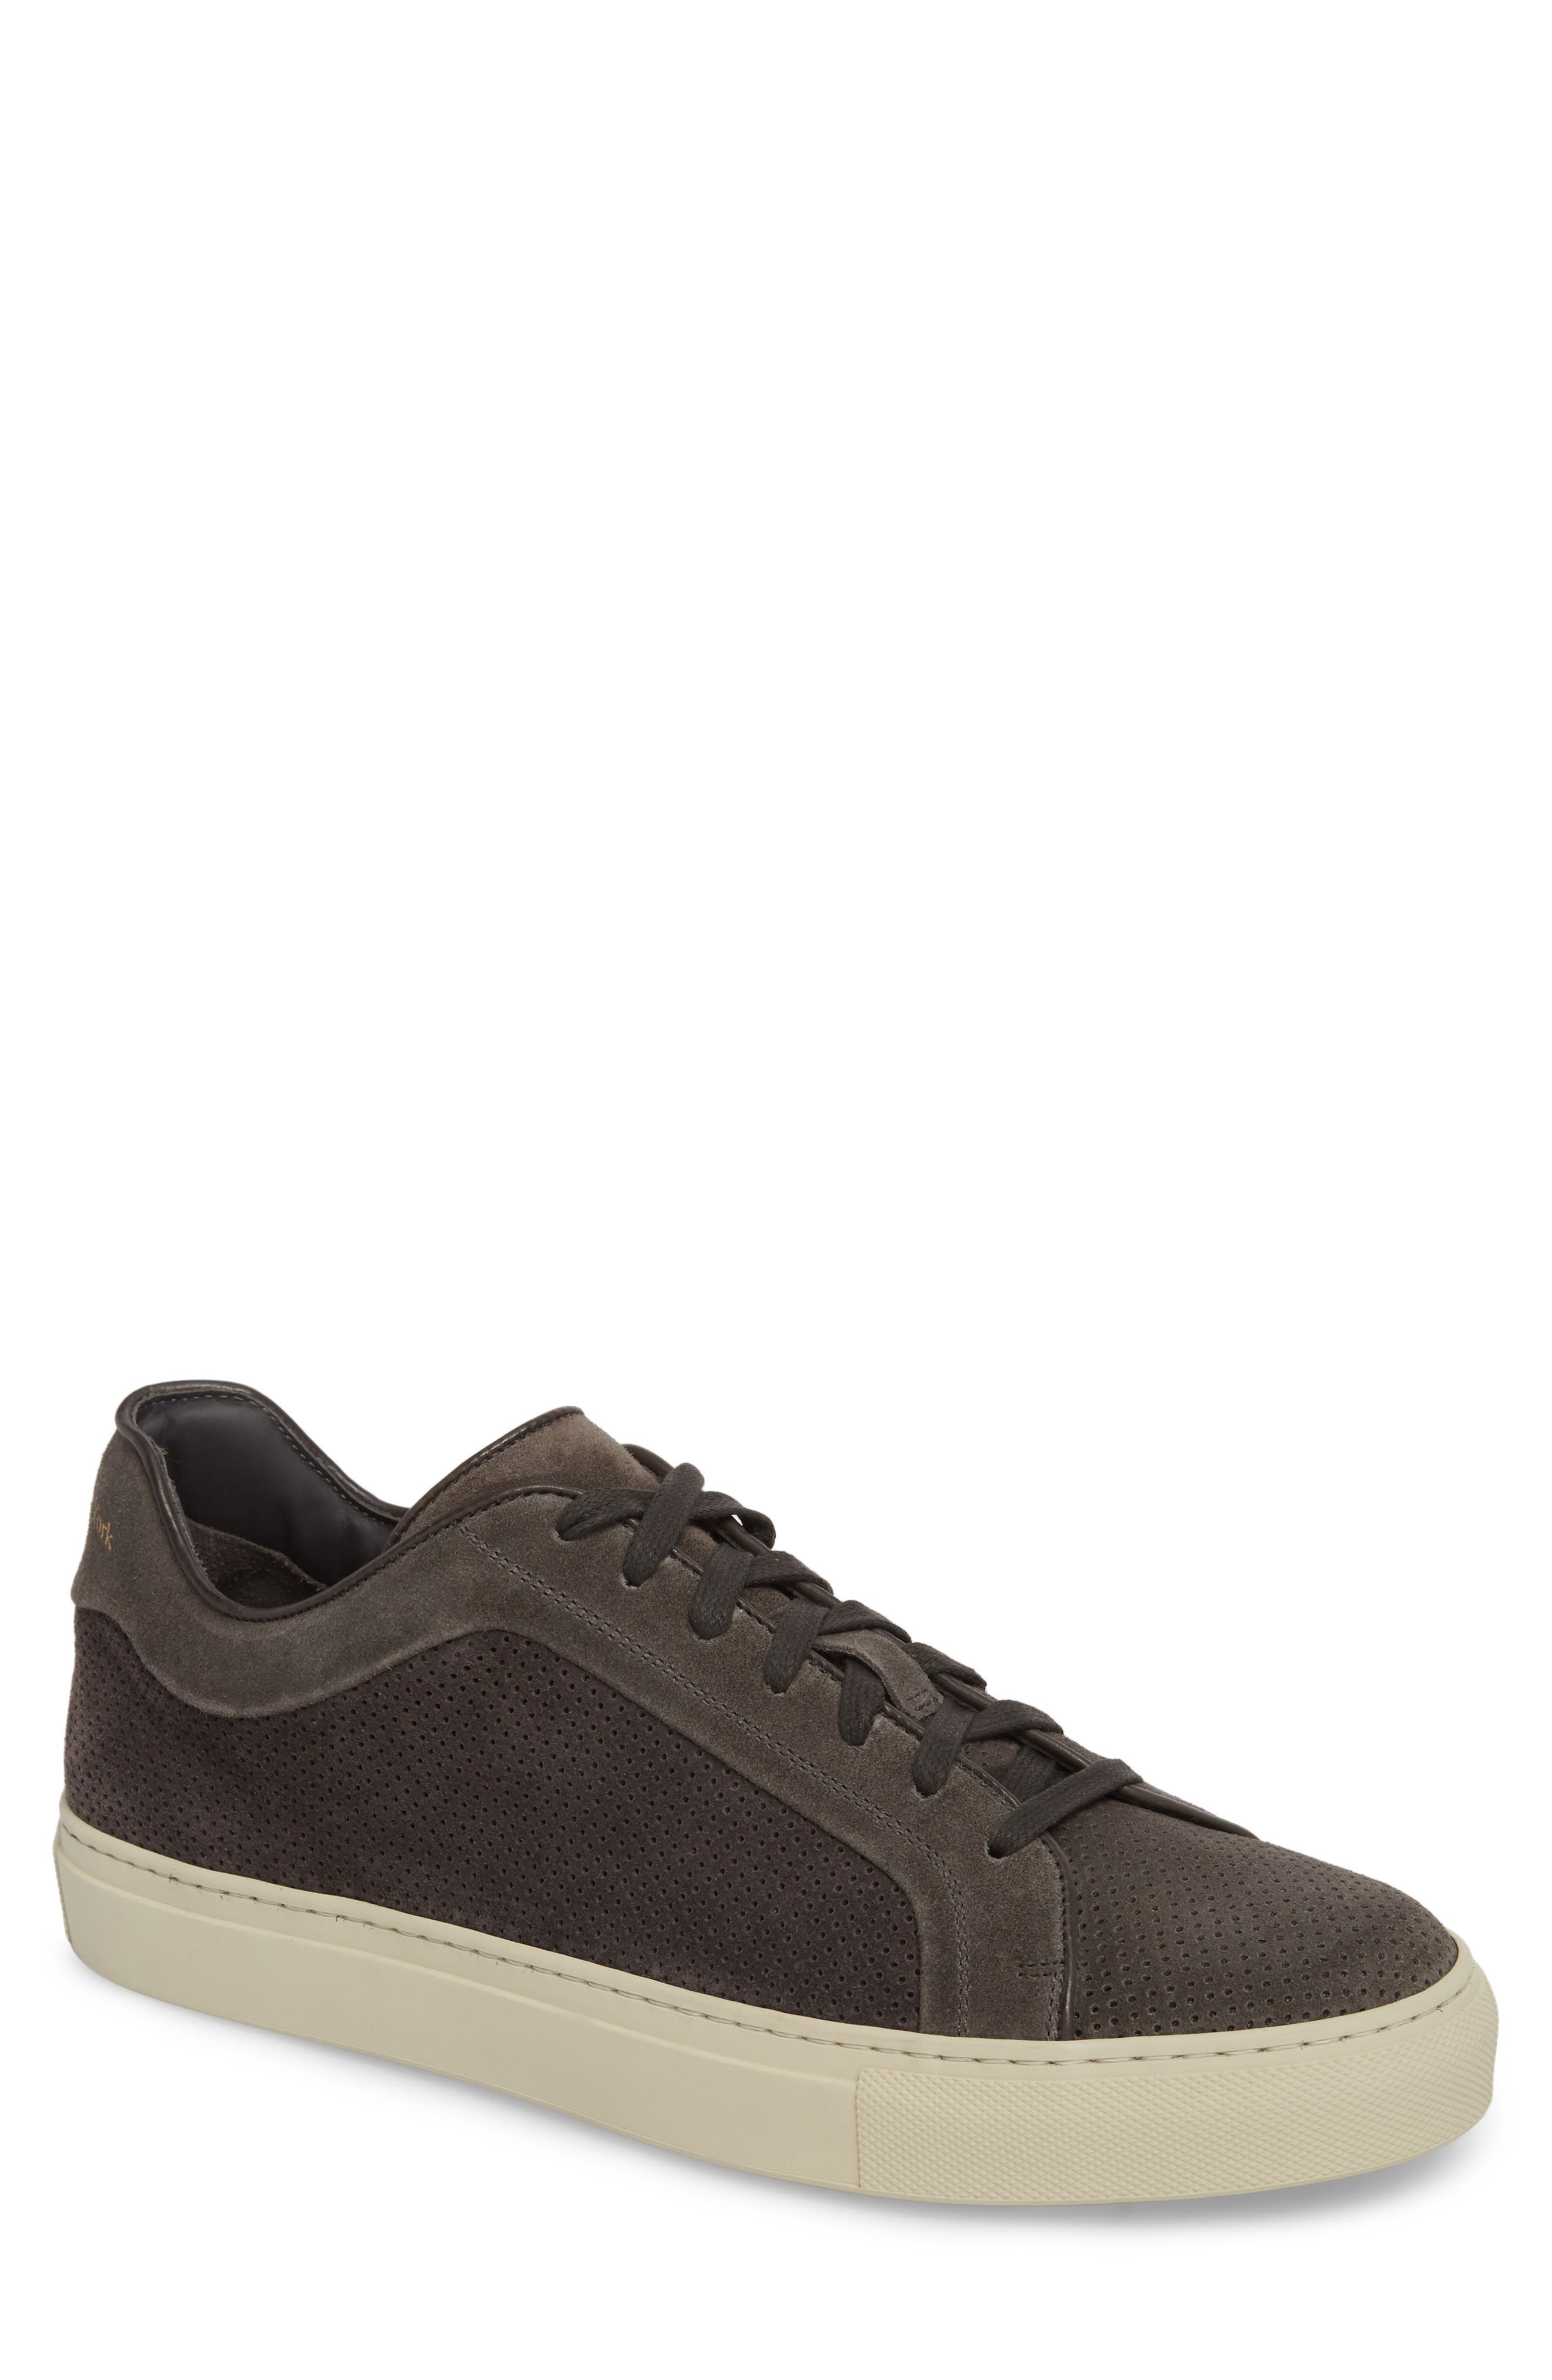 Hendrick Perforated Sneaker,                         Main,                         color, Lavagna